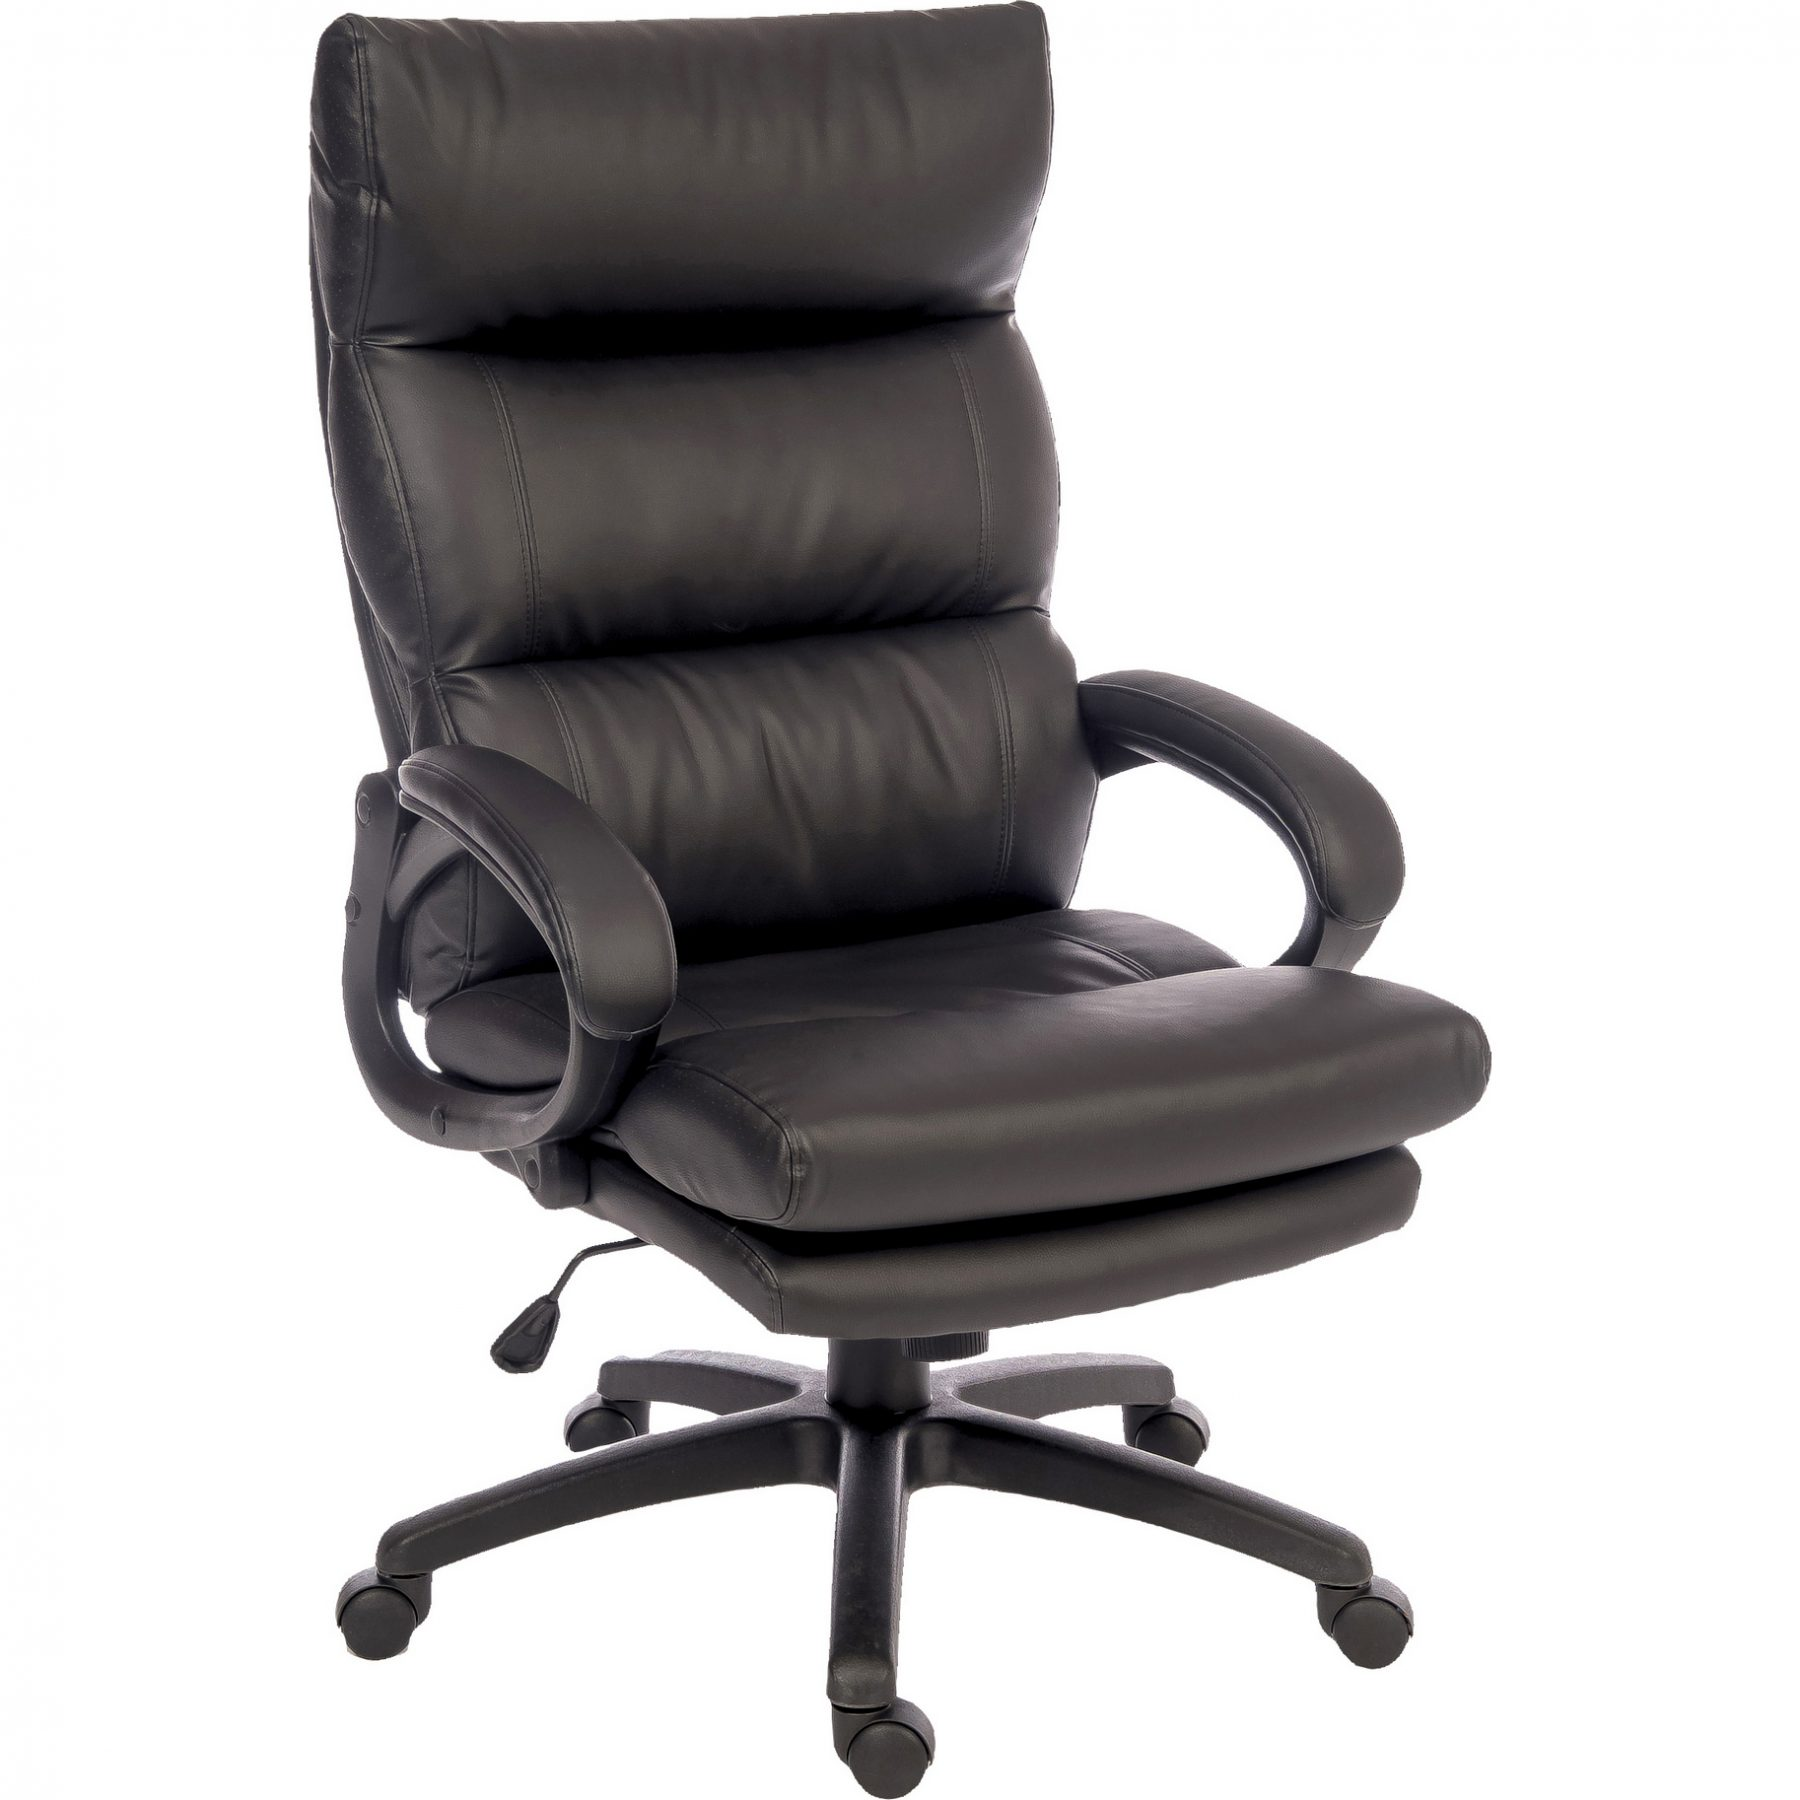 Luxury Office Chair Lincoln Luxury Black Office Chair Faux Leather Home